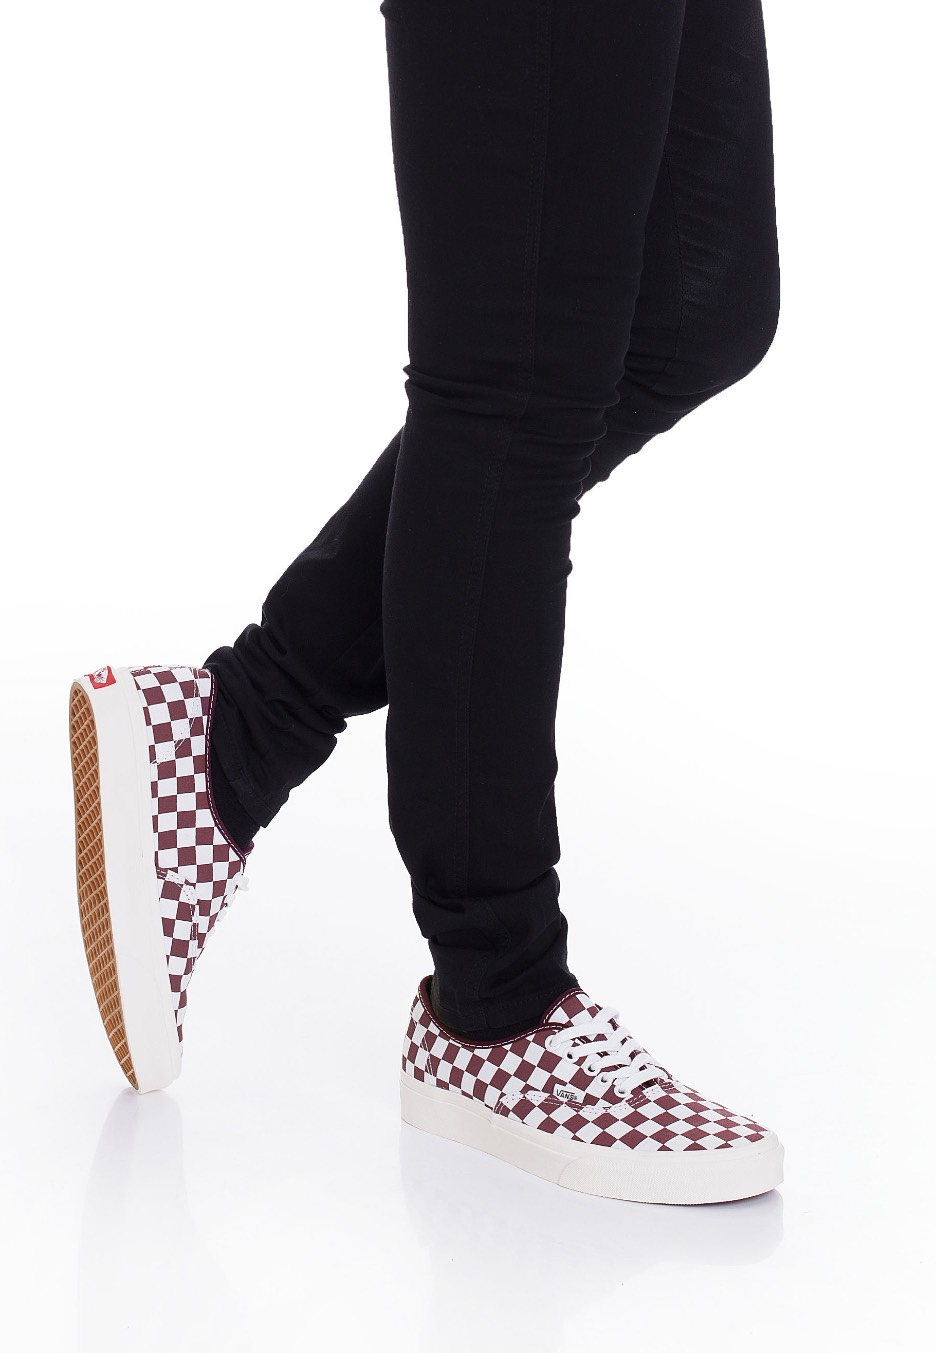 57f0d3602526a1 Vans - Authentic Checkerboard Port Royale Marshmallow - Schuhe ...